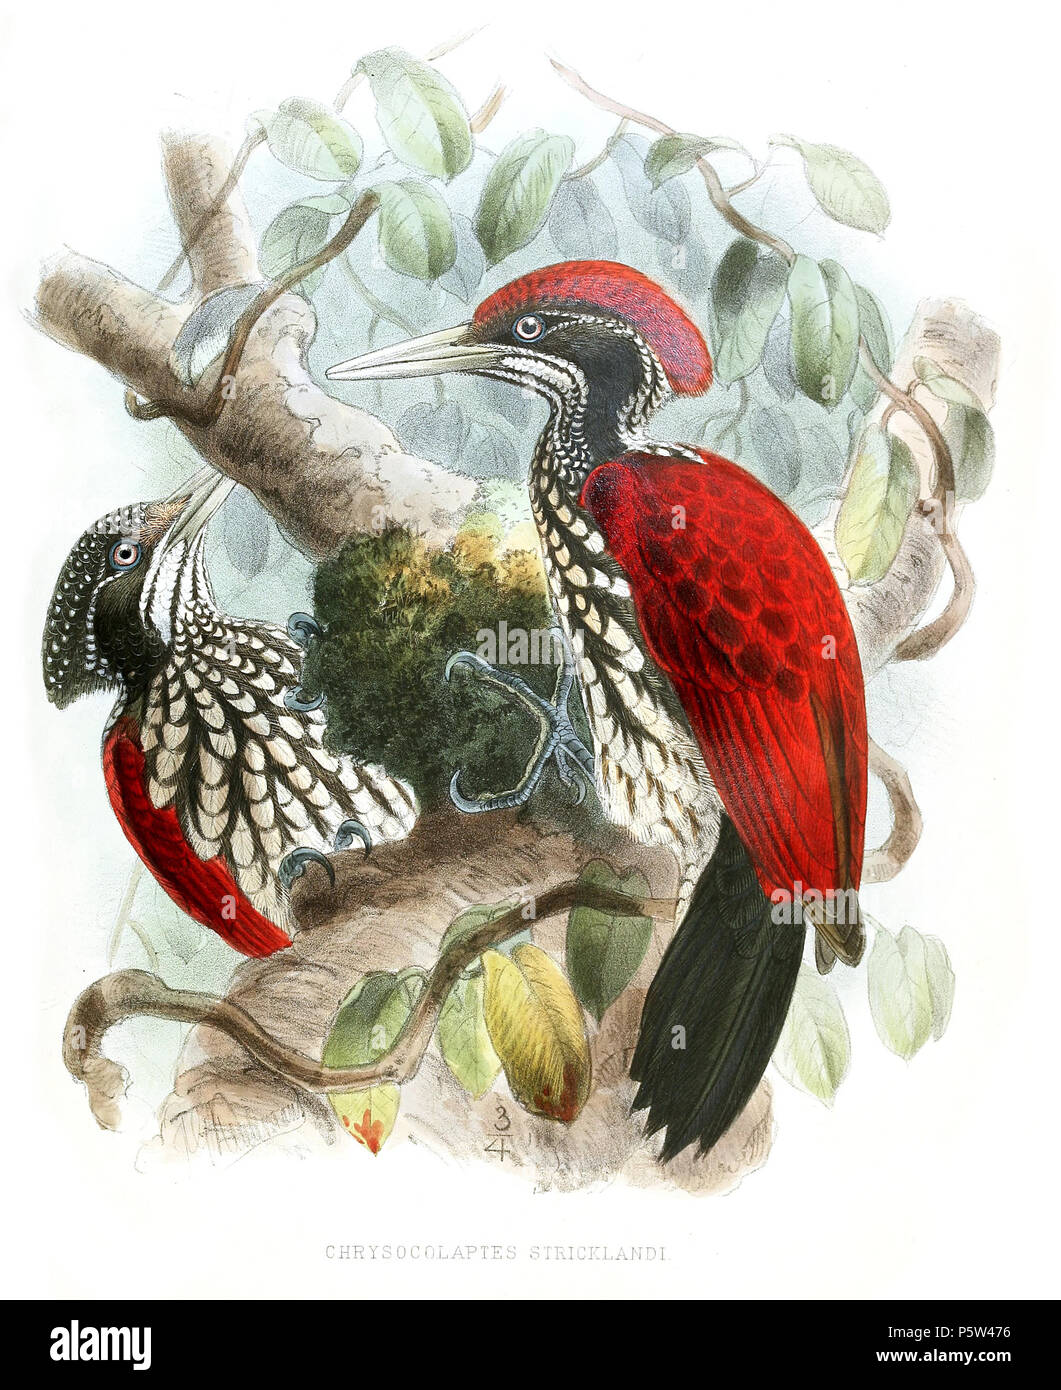 N/A. Chrysocolaptes lucidus stricklandi . 1878.   John Gerrard Keulemans  (1842–1912)      Alternative names Johannes Gerardus Keulemans; J. G. Keulemans  Description Dutch ornithologist and artist  Date of birth/death 8 June 1842 29 December 1912  Location of birth/death Rotterdam London  Authority control  : Q1335286 VIAF:42113661 ISNI:0000 0000 6313 981X ULAN:500041975 LCCN:no98083374 NLA:35268760 WorldCat    (June 8, 1842, Rotterdam - March 29, 1912); Author: W. Vincent Legge (2 September 1841 – 25 March 1918) 346 ChrysocolaptesStricklandiLegge - Stock Image